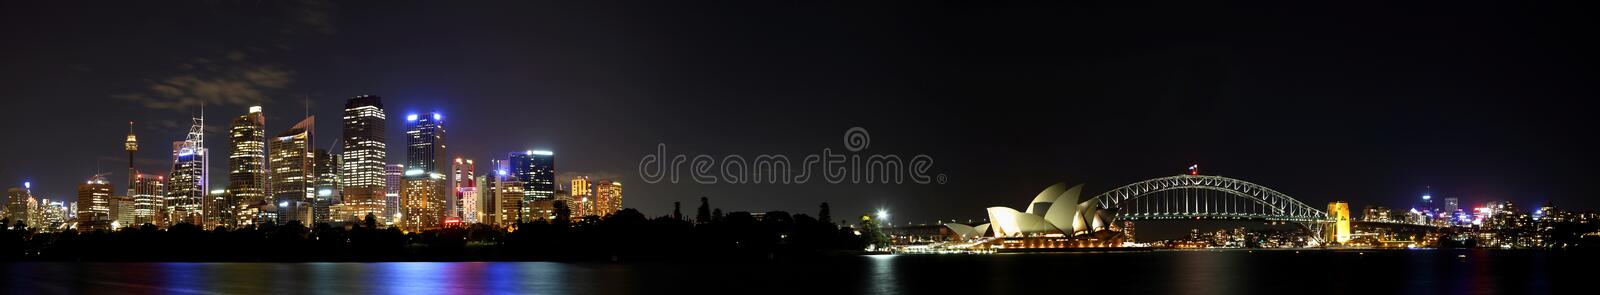 Panoramic view of the Sydney skyline, including the Harbor Bridge and Opera House at night stock images